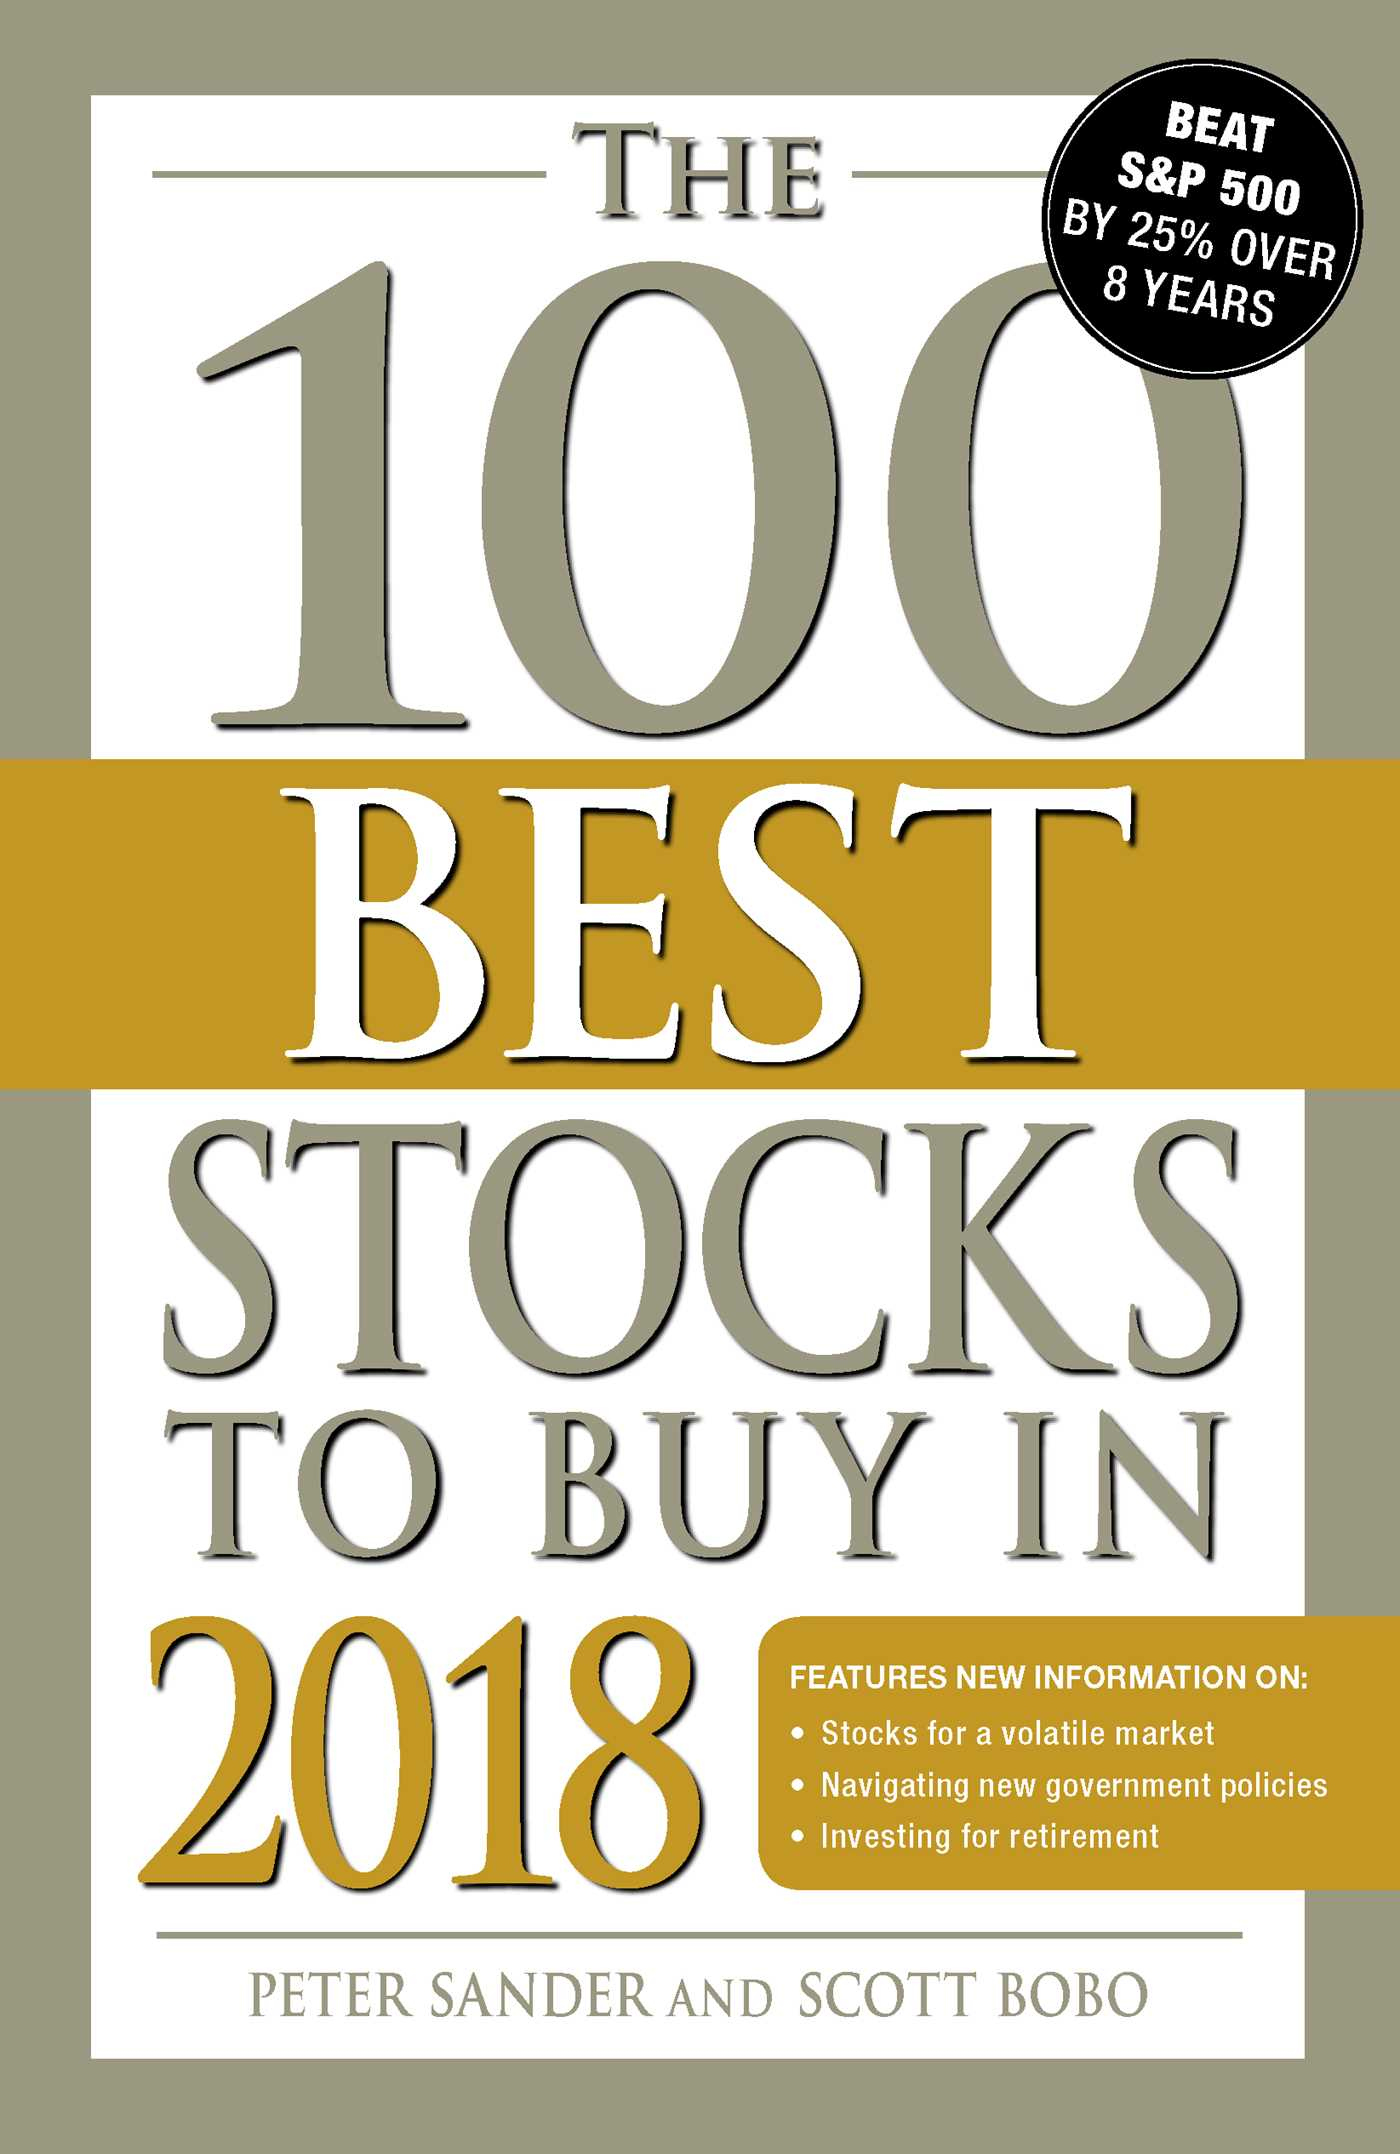 The 100 best stocks to buy in 2018 9781507204320 hr